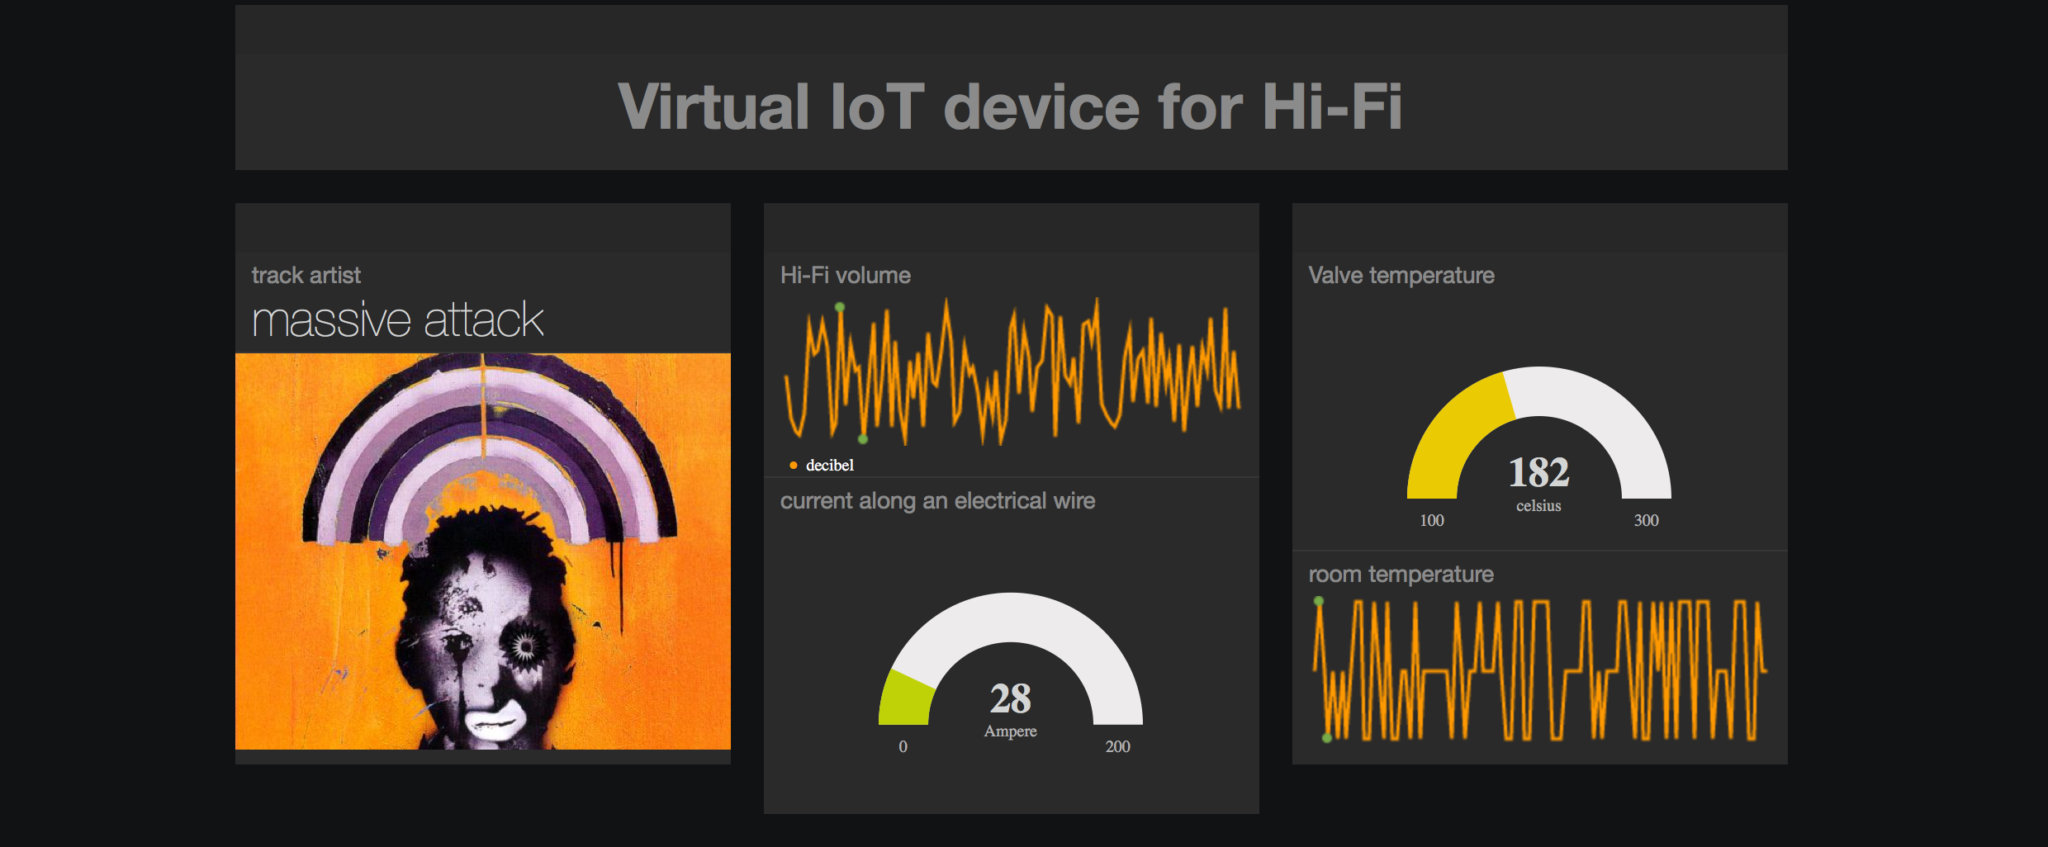 Virtual IoT device